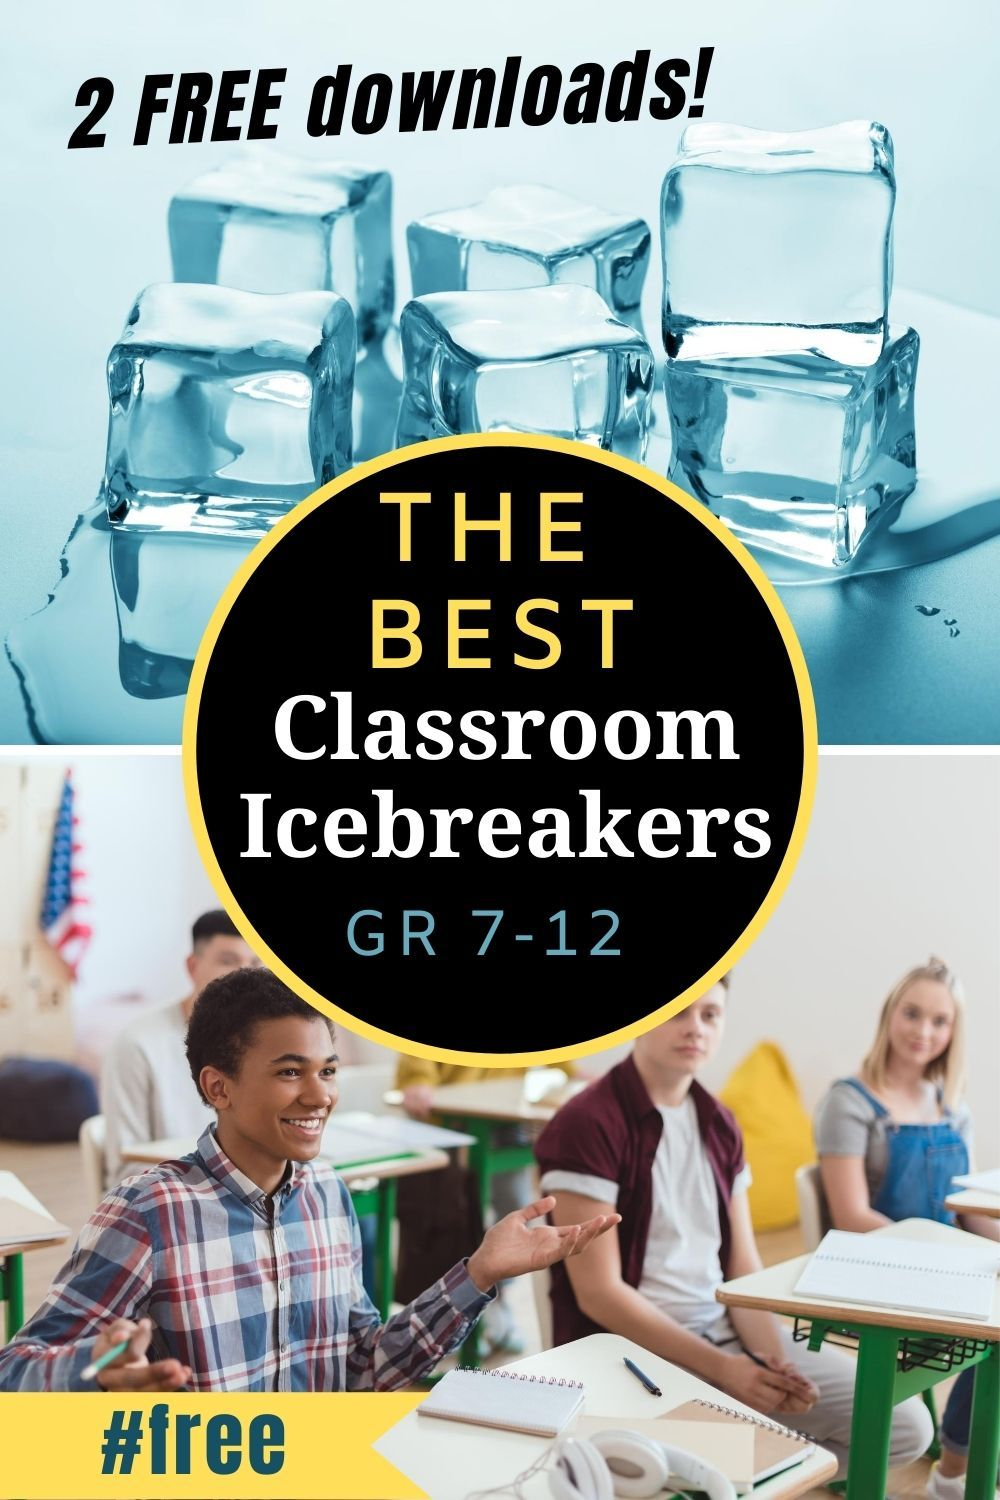 Classroom Icebreakers Don't Be Lame, Use No Cheese